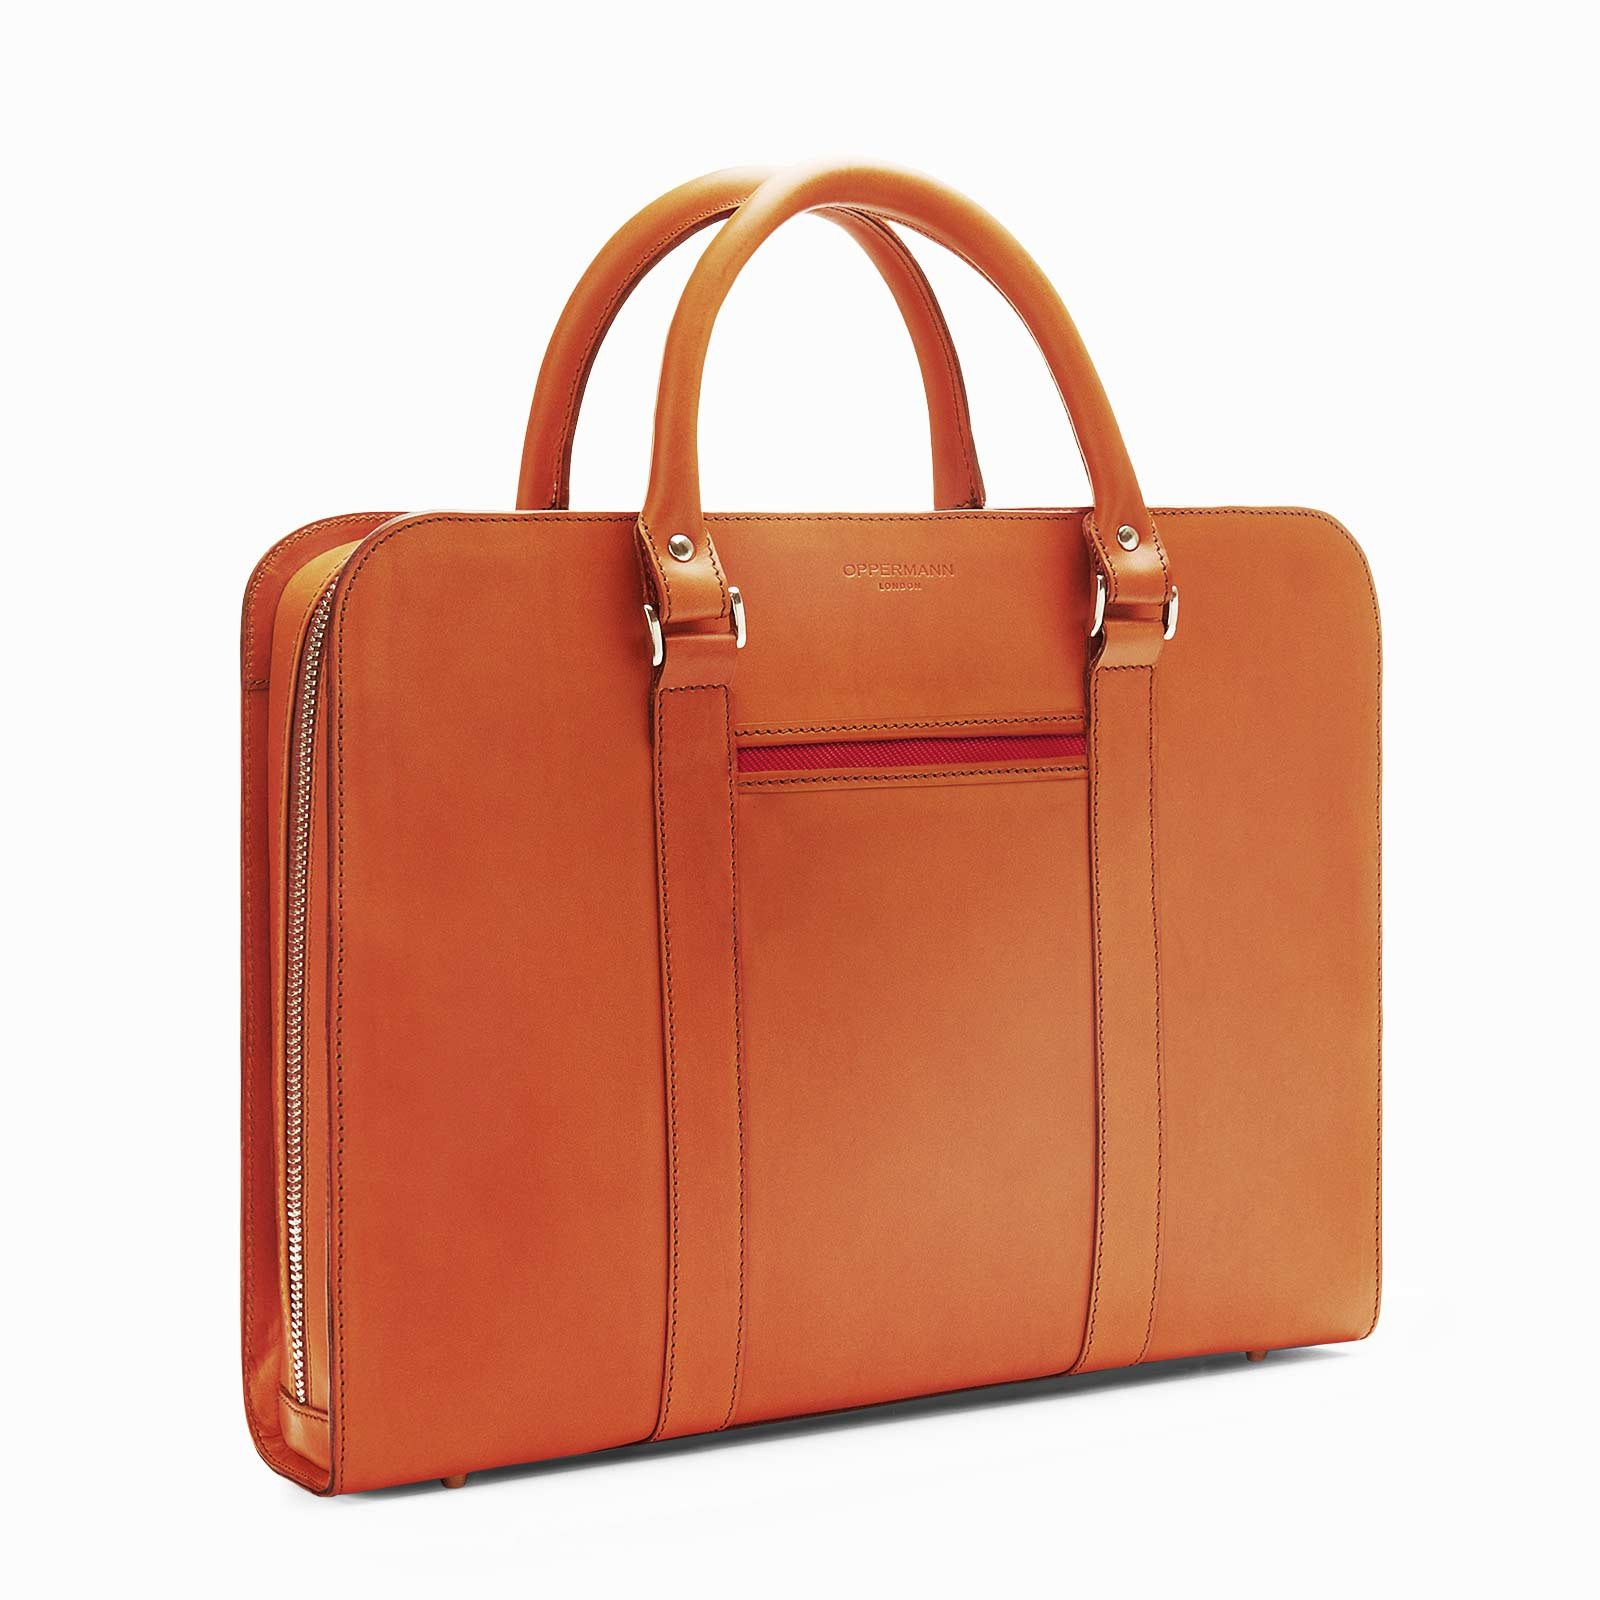 oppermann-palissy-briefcase-cognac-red-1